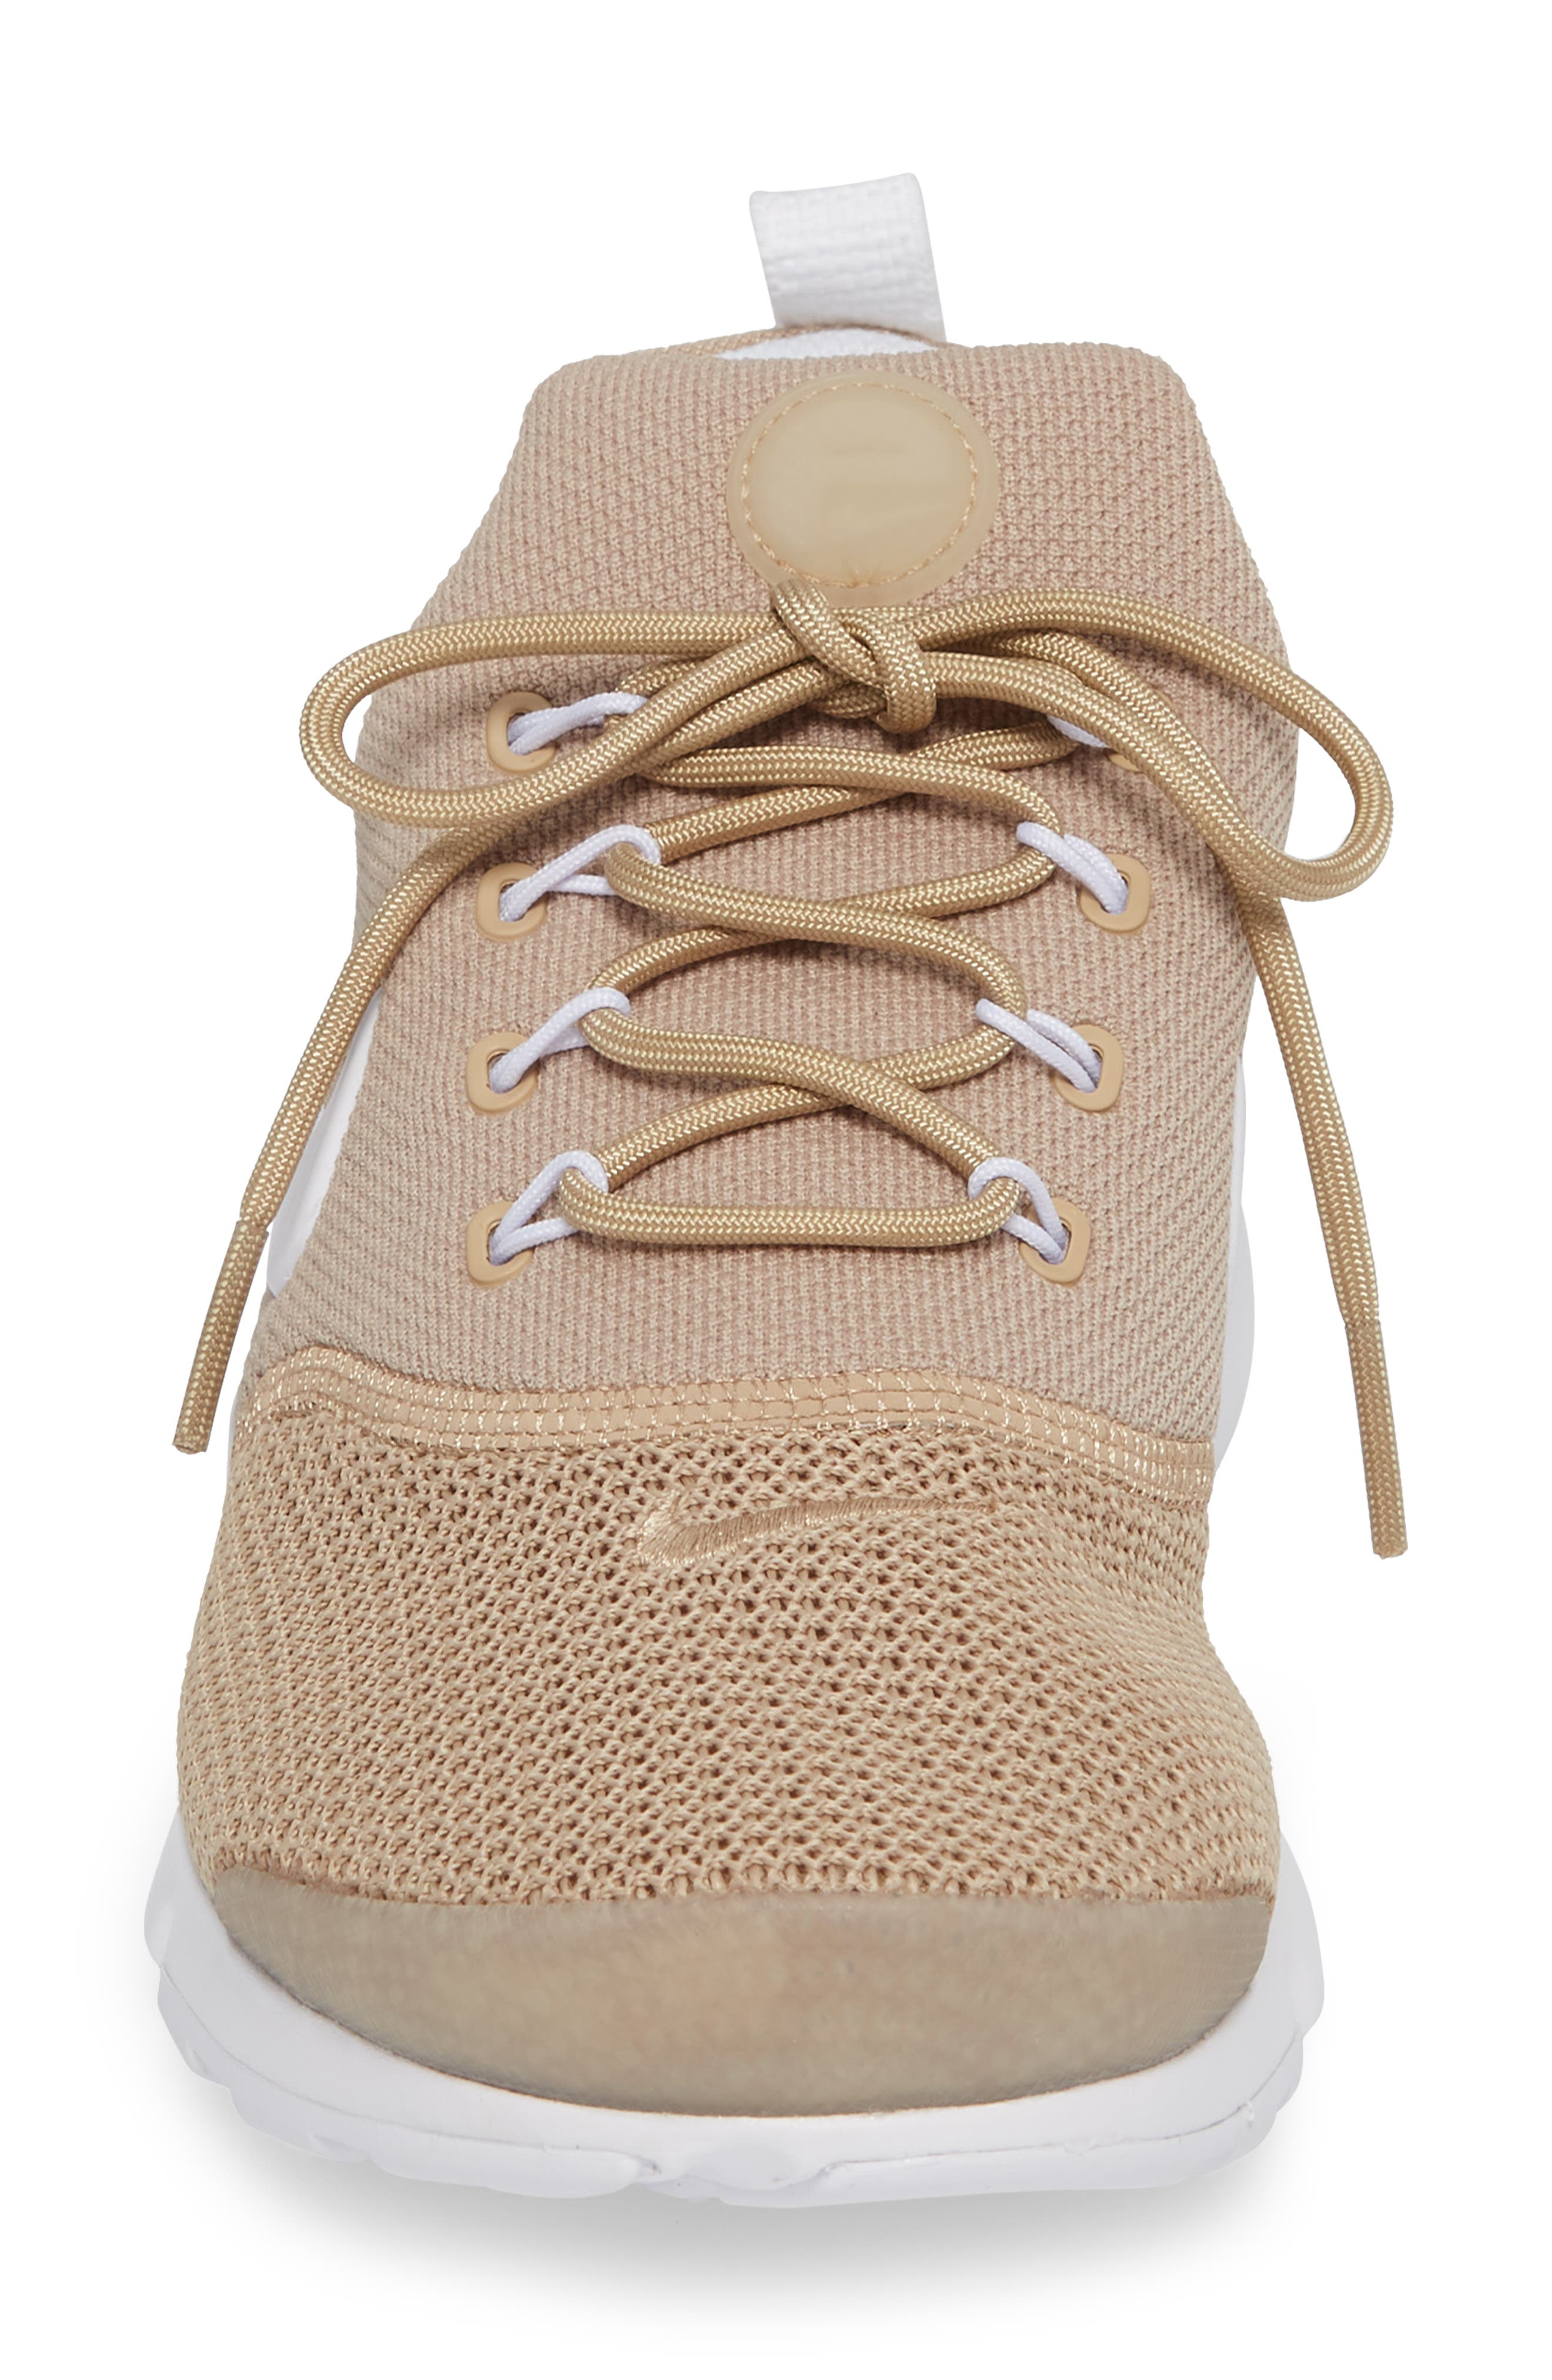 Presto Fly Sneaker,                             Alternate thumbnail 3, color,                             Sand/ White